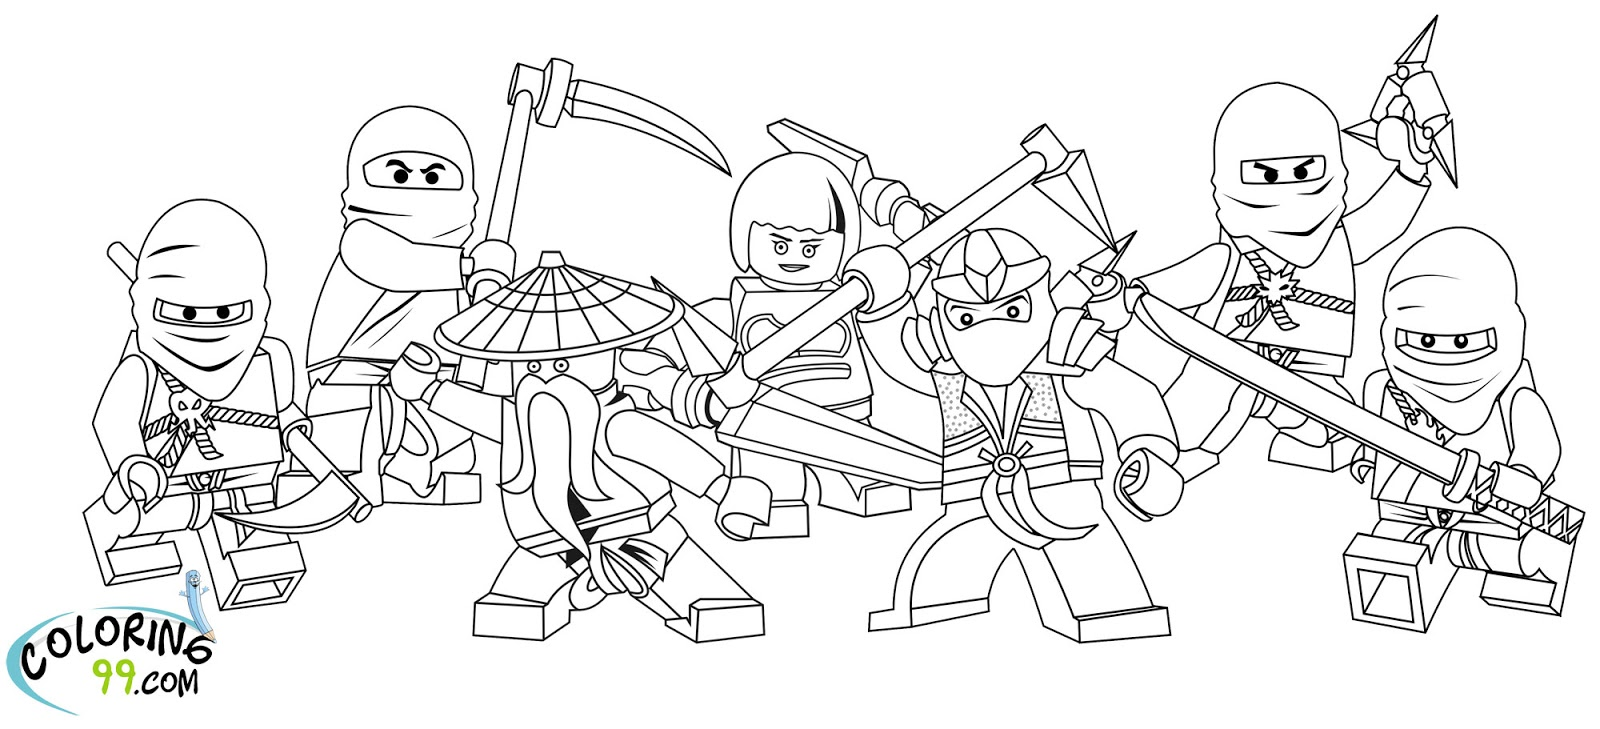 Printable Lego Colouring Pictures : Lego ninjago coloring pages team colors